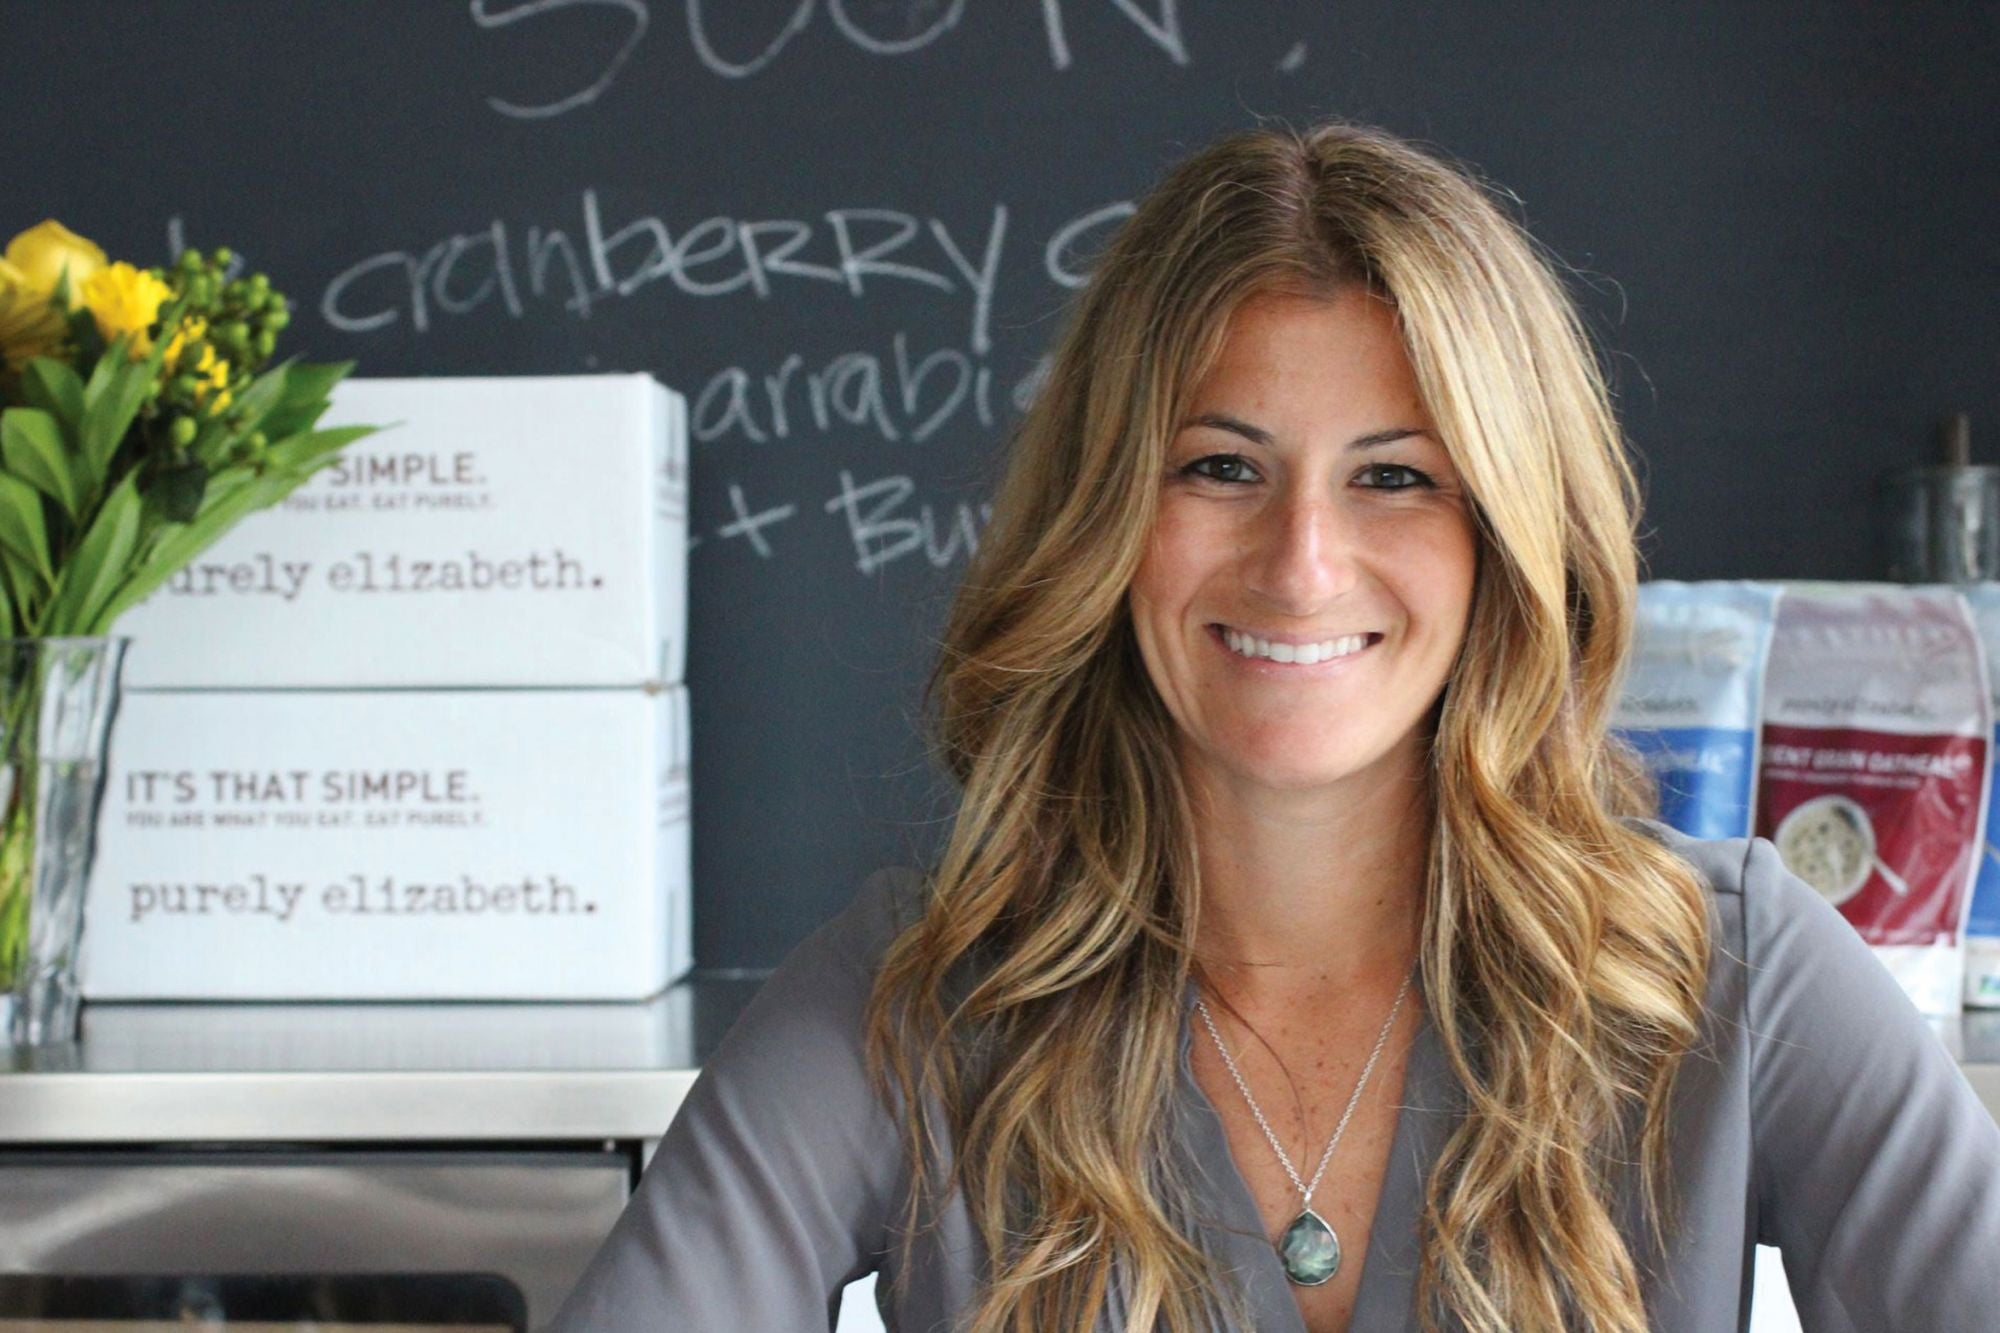 The Entrepreneur Behind Purely Elizabeth Pivoted Into Her Breakout Product